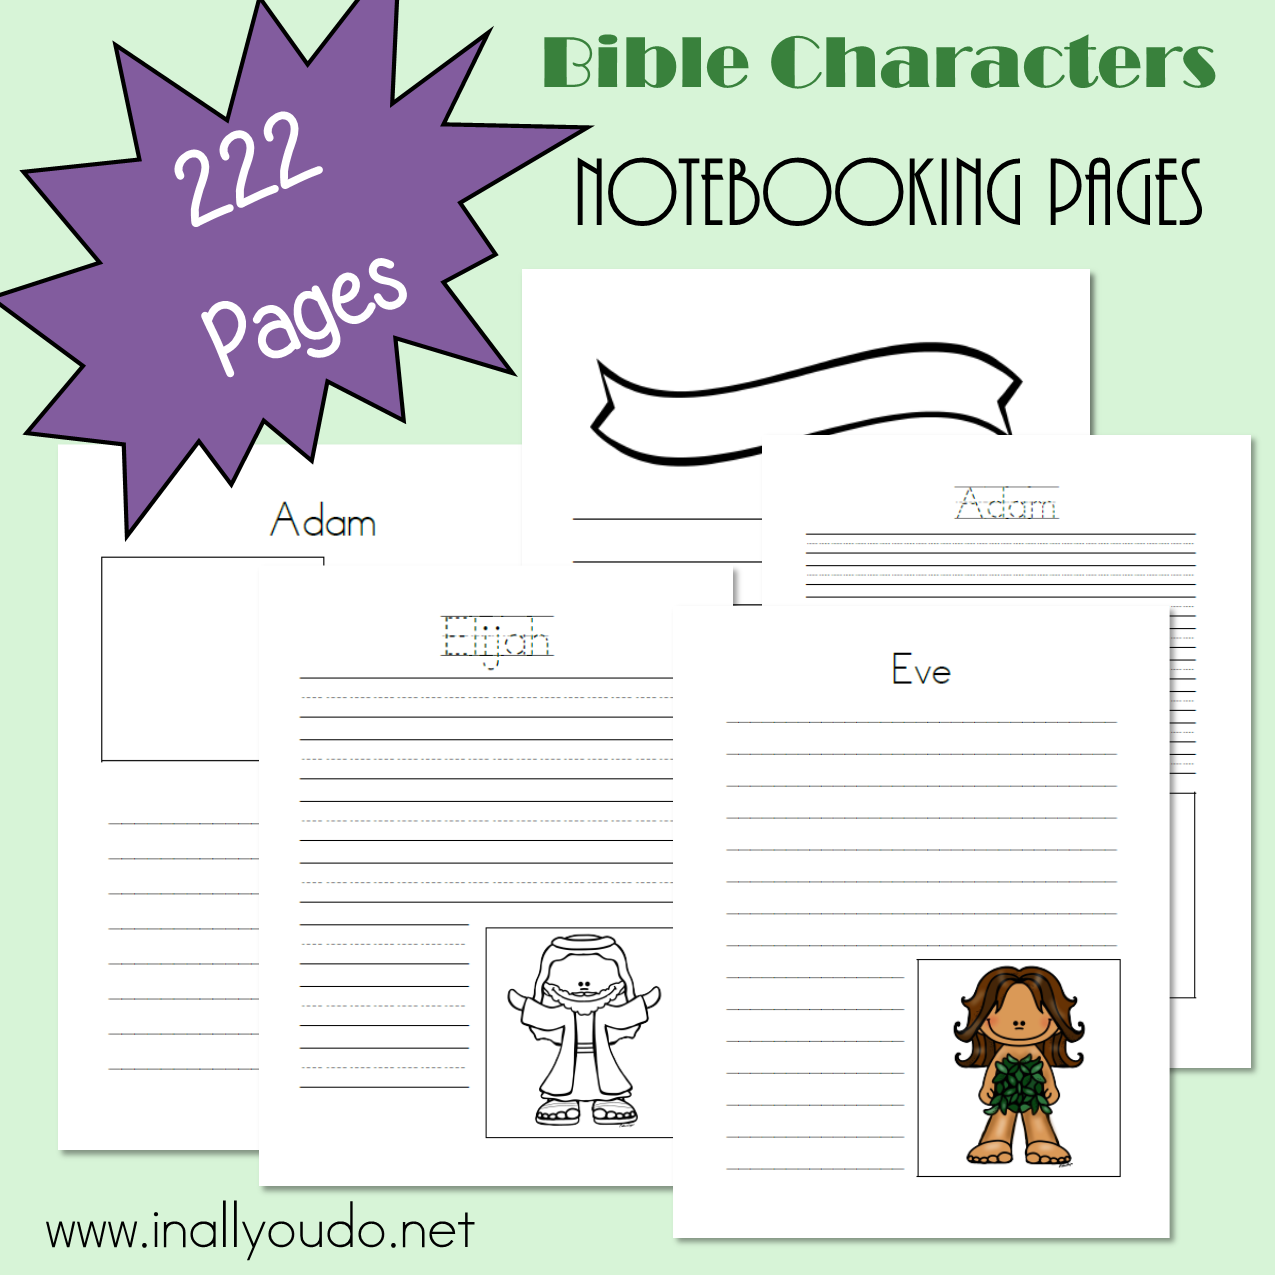 12 Bible Characters Notebooking Pages 222 Pages With